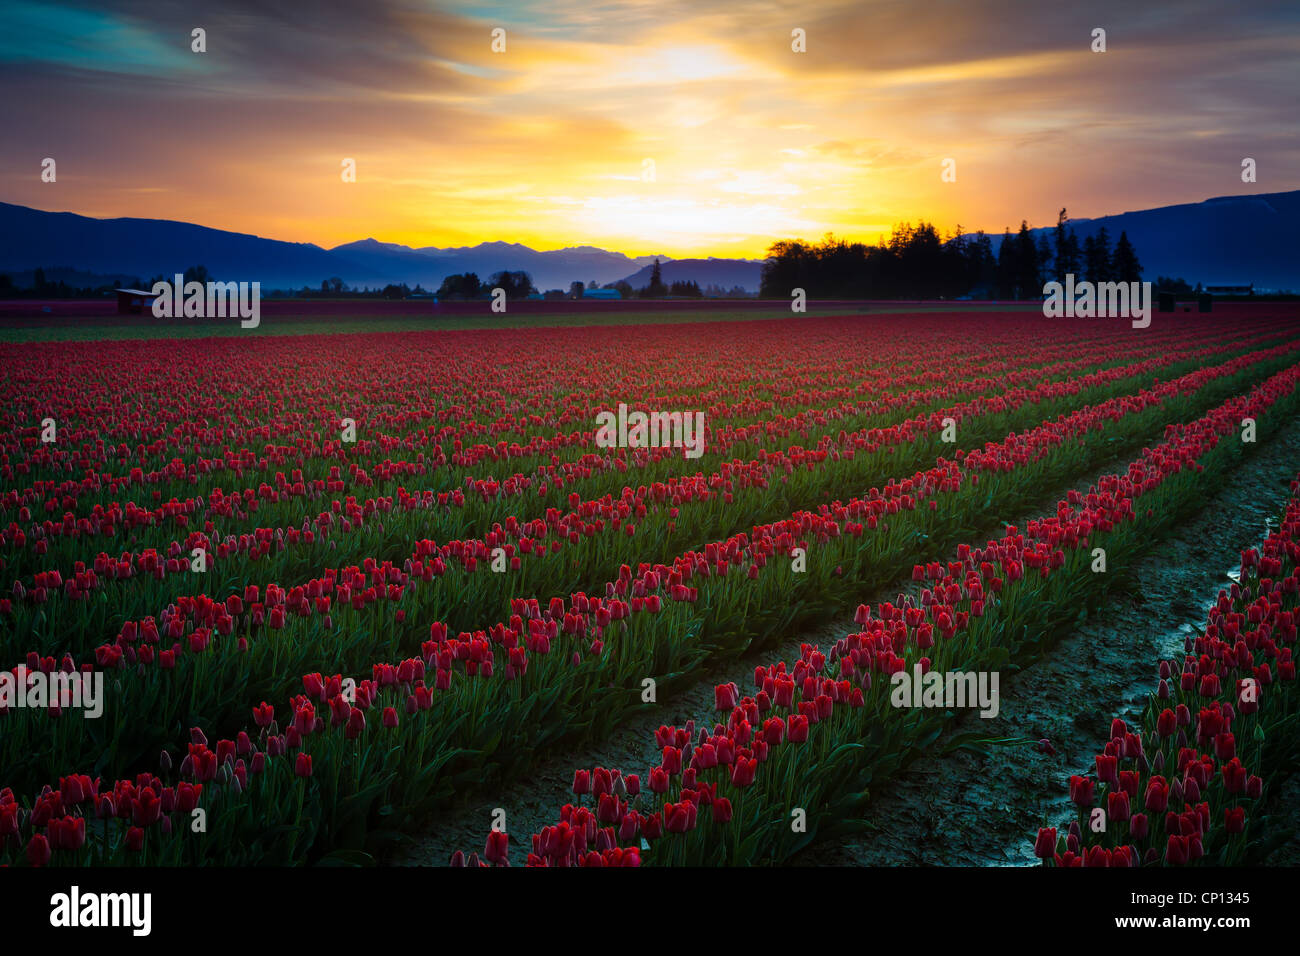 Tulip fields at sunrise in Skagit Valley in Mount Vernon, Washington, during the annual tulip festival - Stock Image